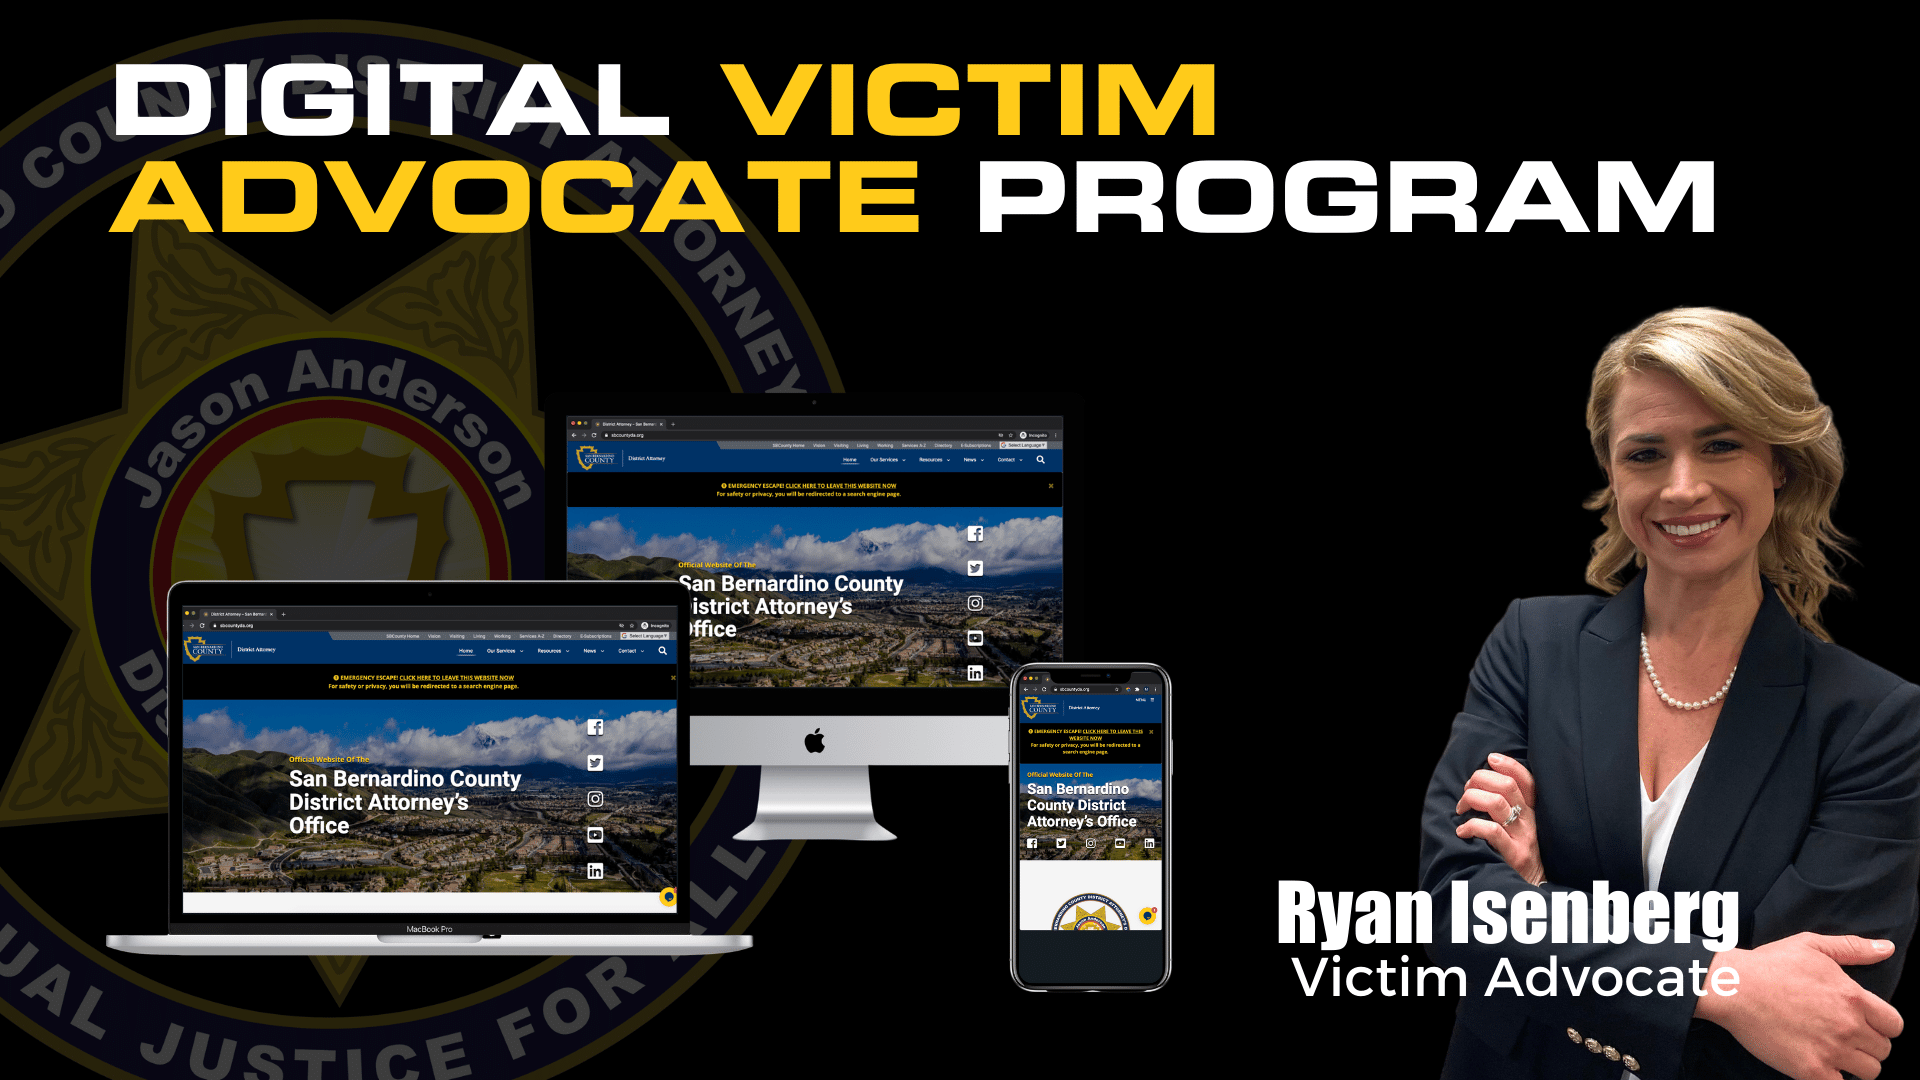 Advertisement for the digital victim advocate program